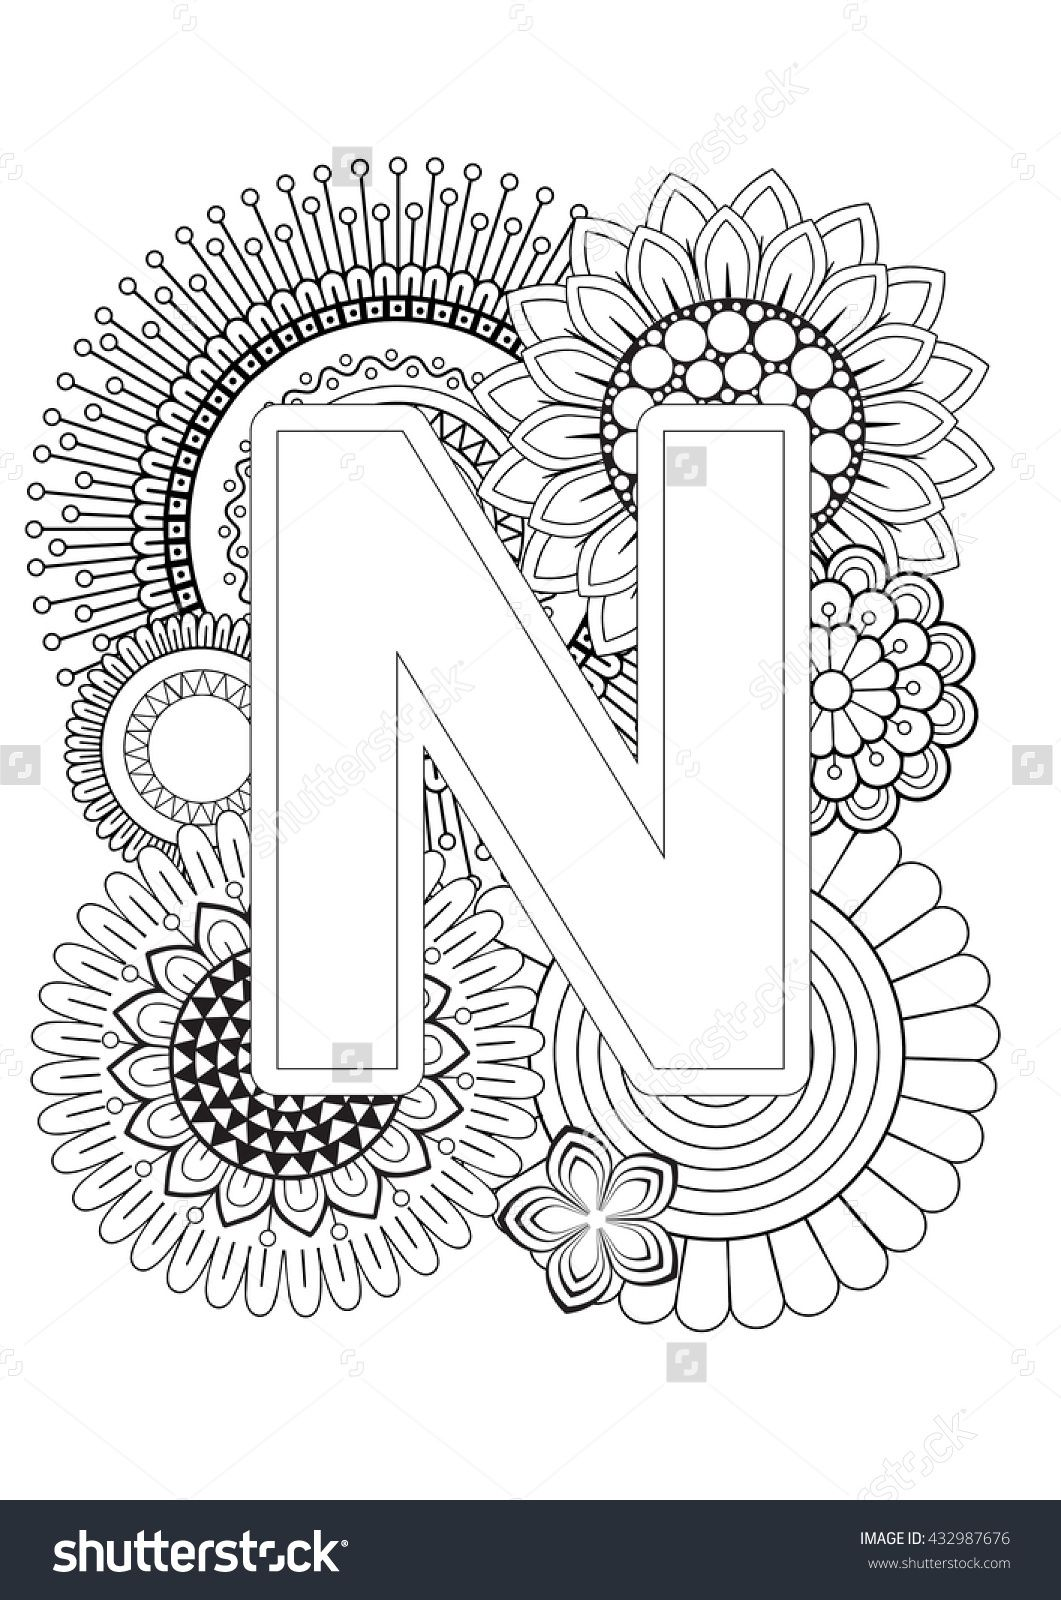 Doodle floral letters coloring book for adult mandala and doodle floral letters coloring book for adult mandala and sunflower abc book thecheapjerseys